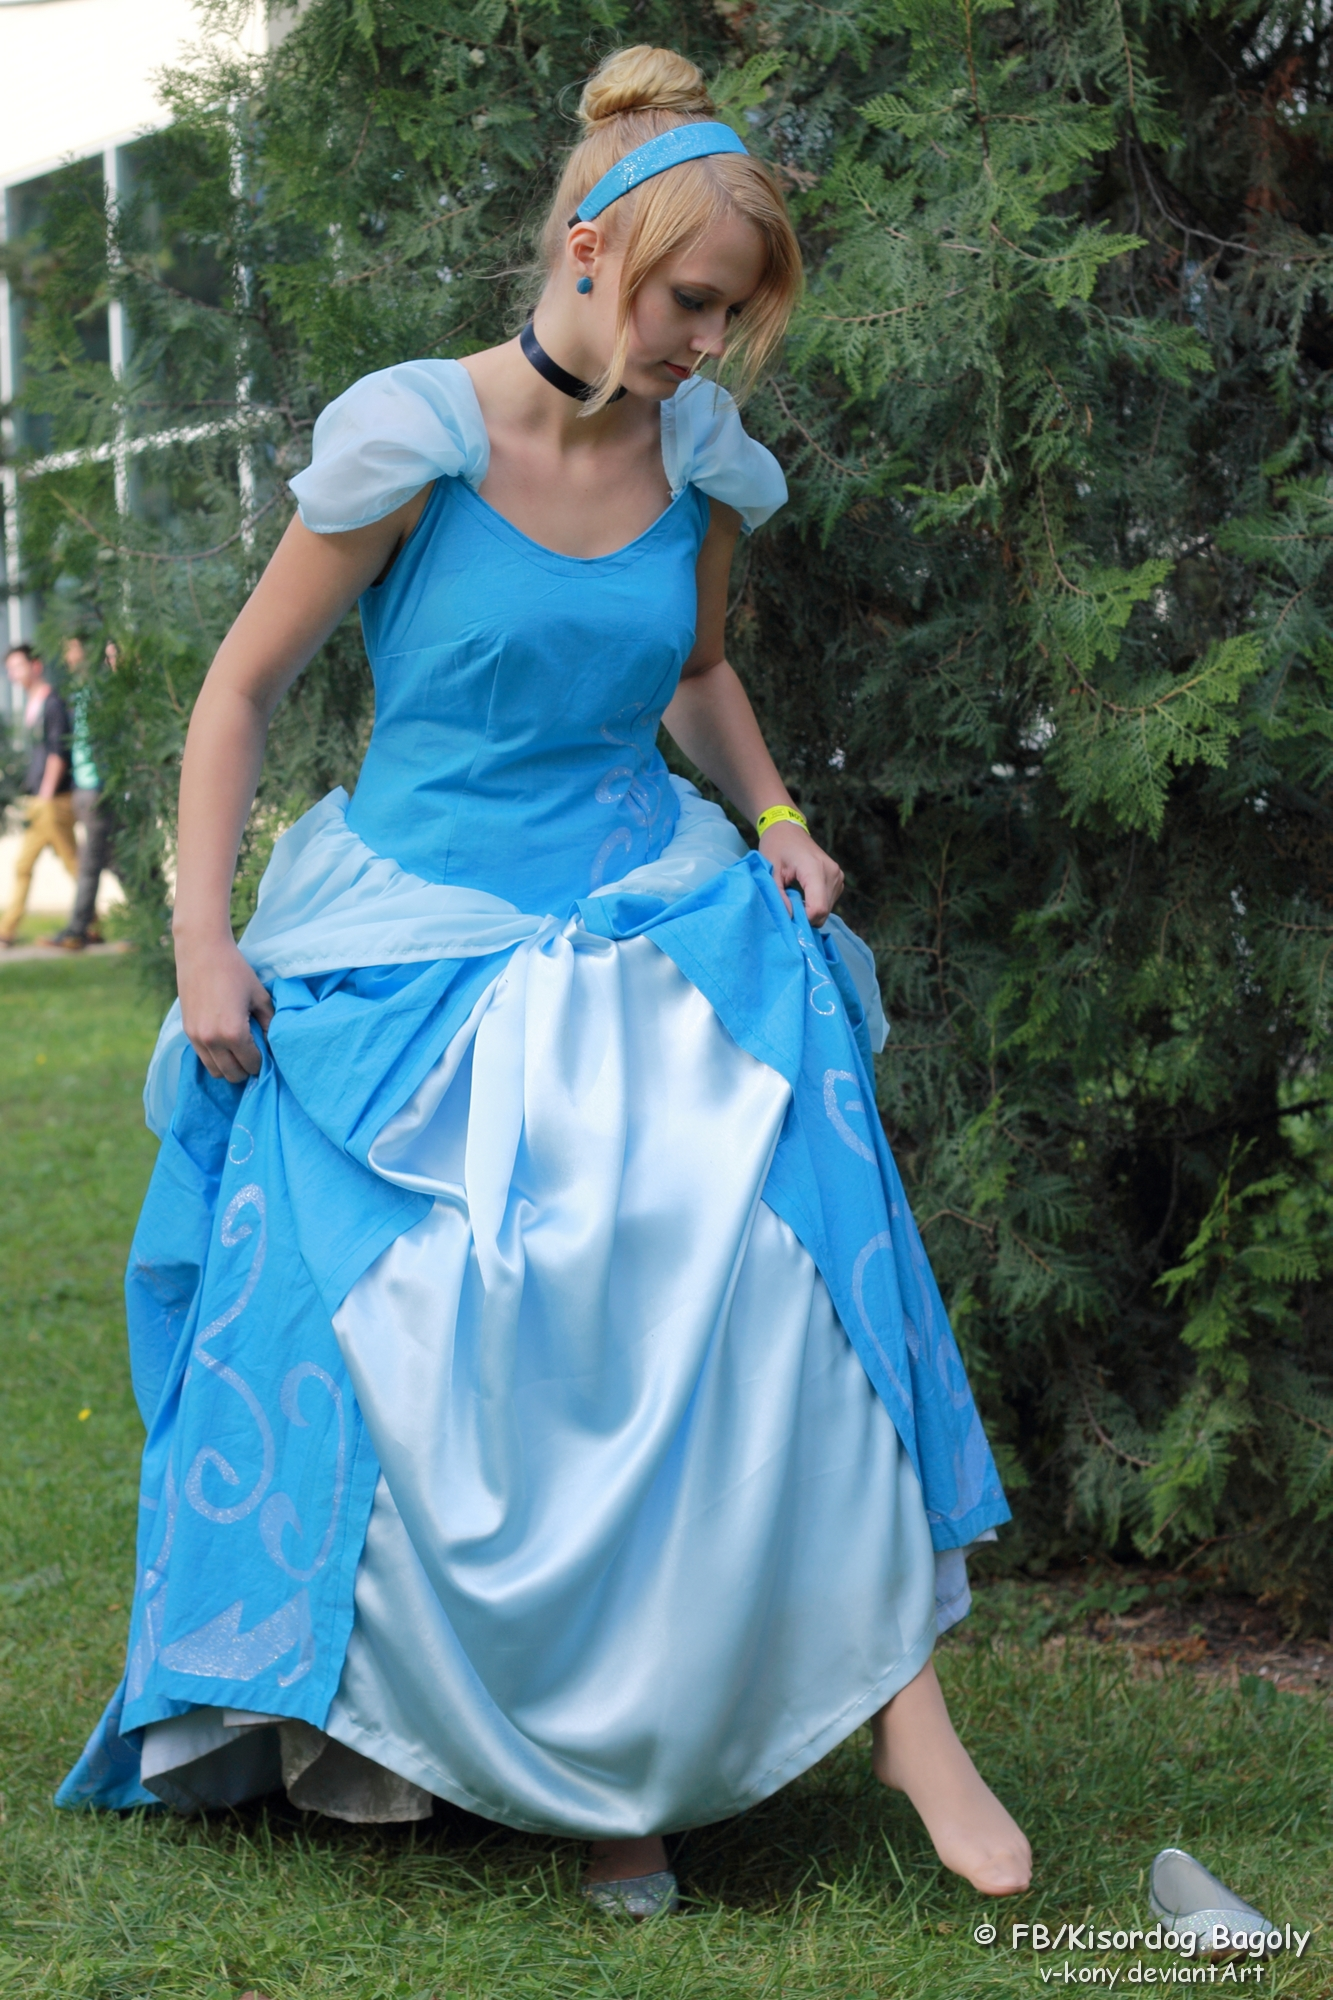 Cinderella And Her Lost Shoe 2 By V Kony On DeviantArt